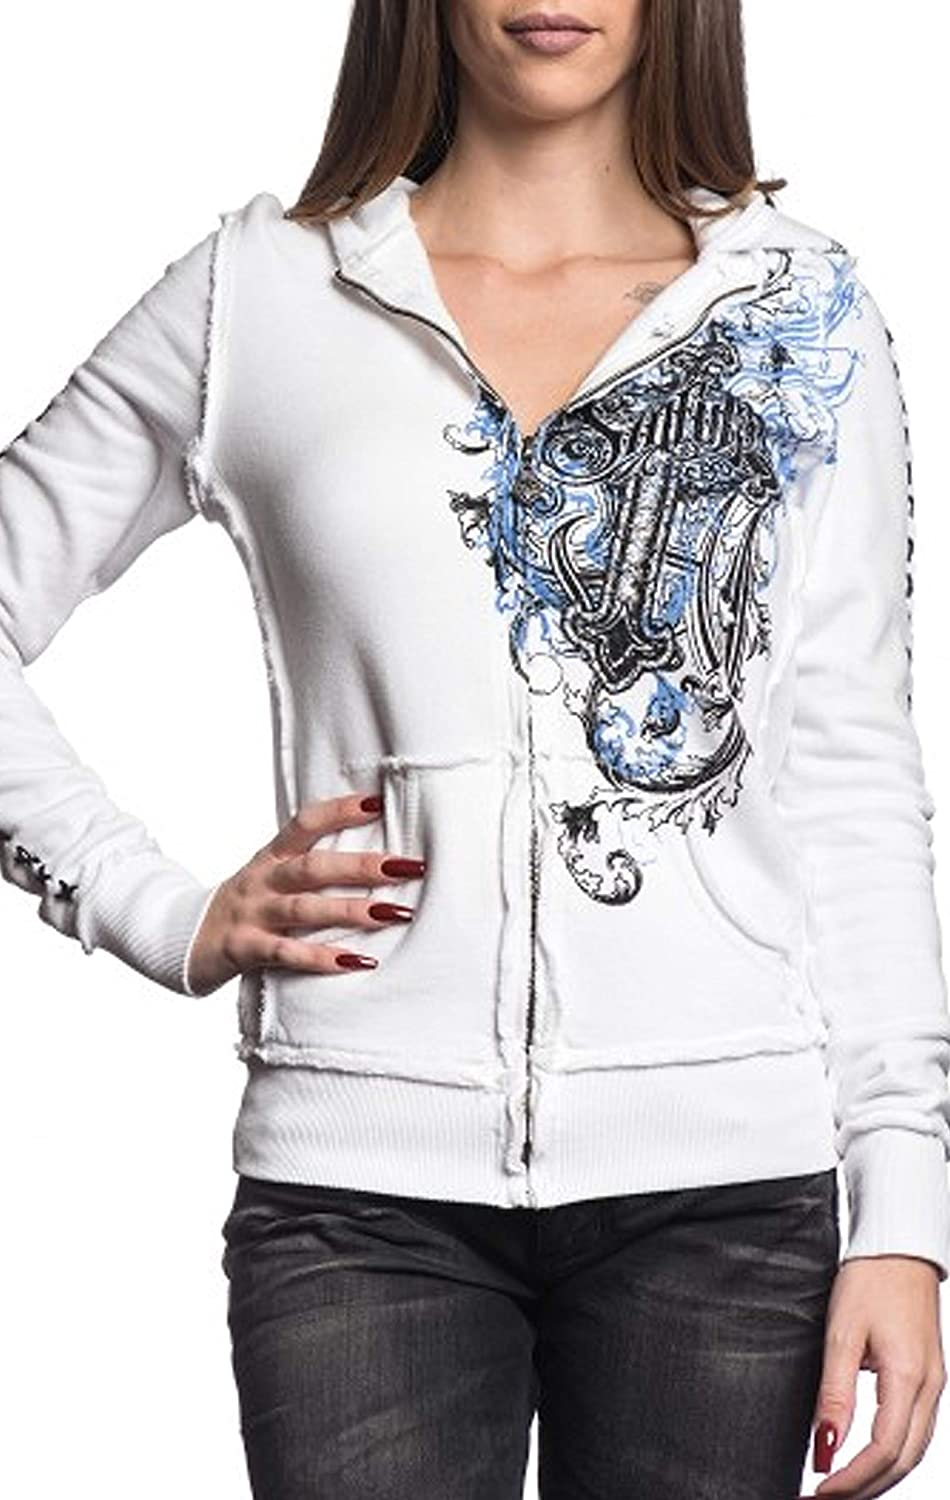 SINFUL Binded Heart S3683 New Women`s White Zip Hood Jacket By Affliction